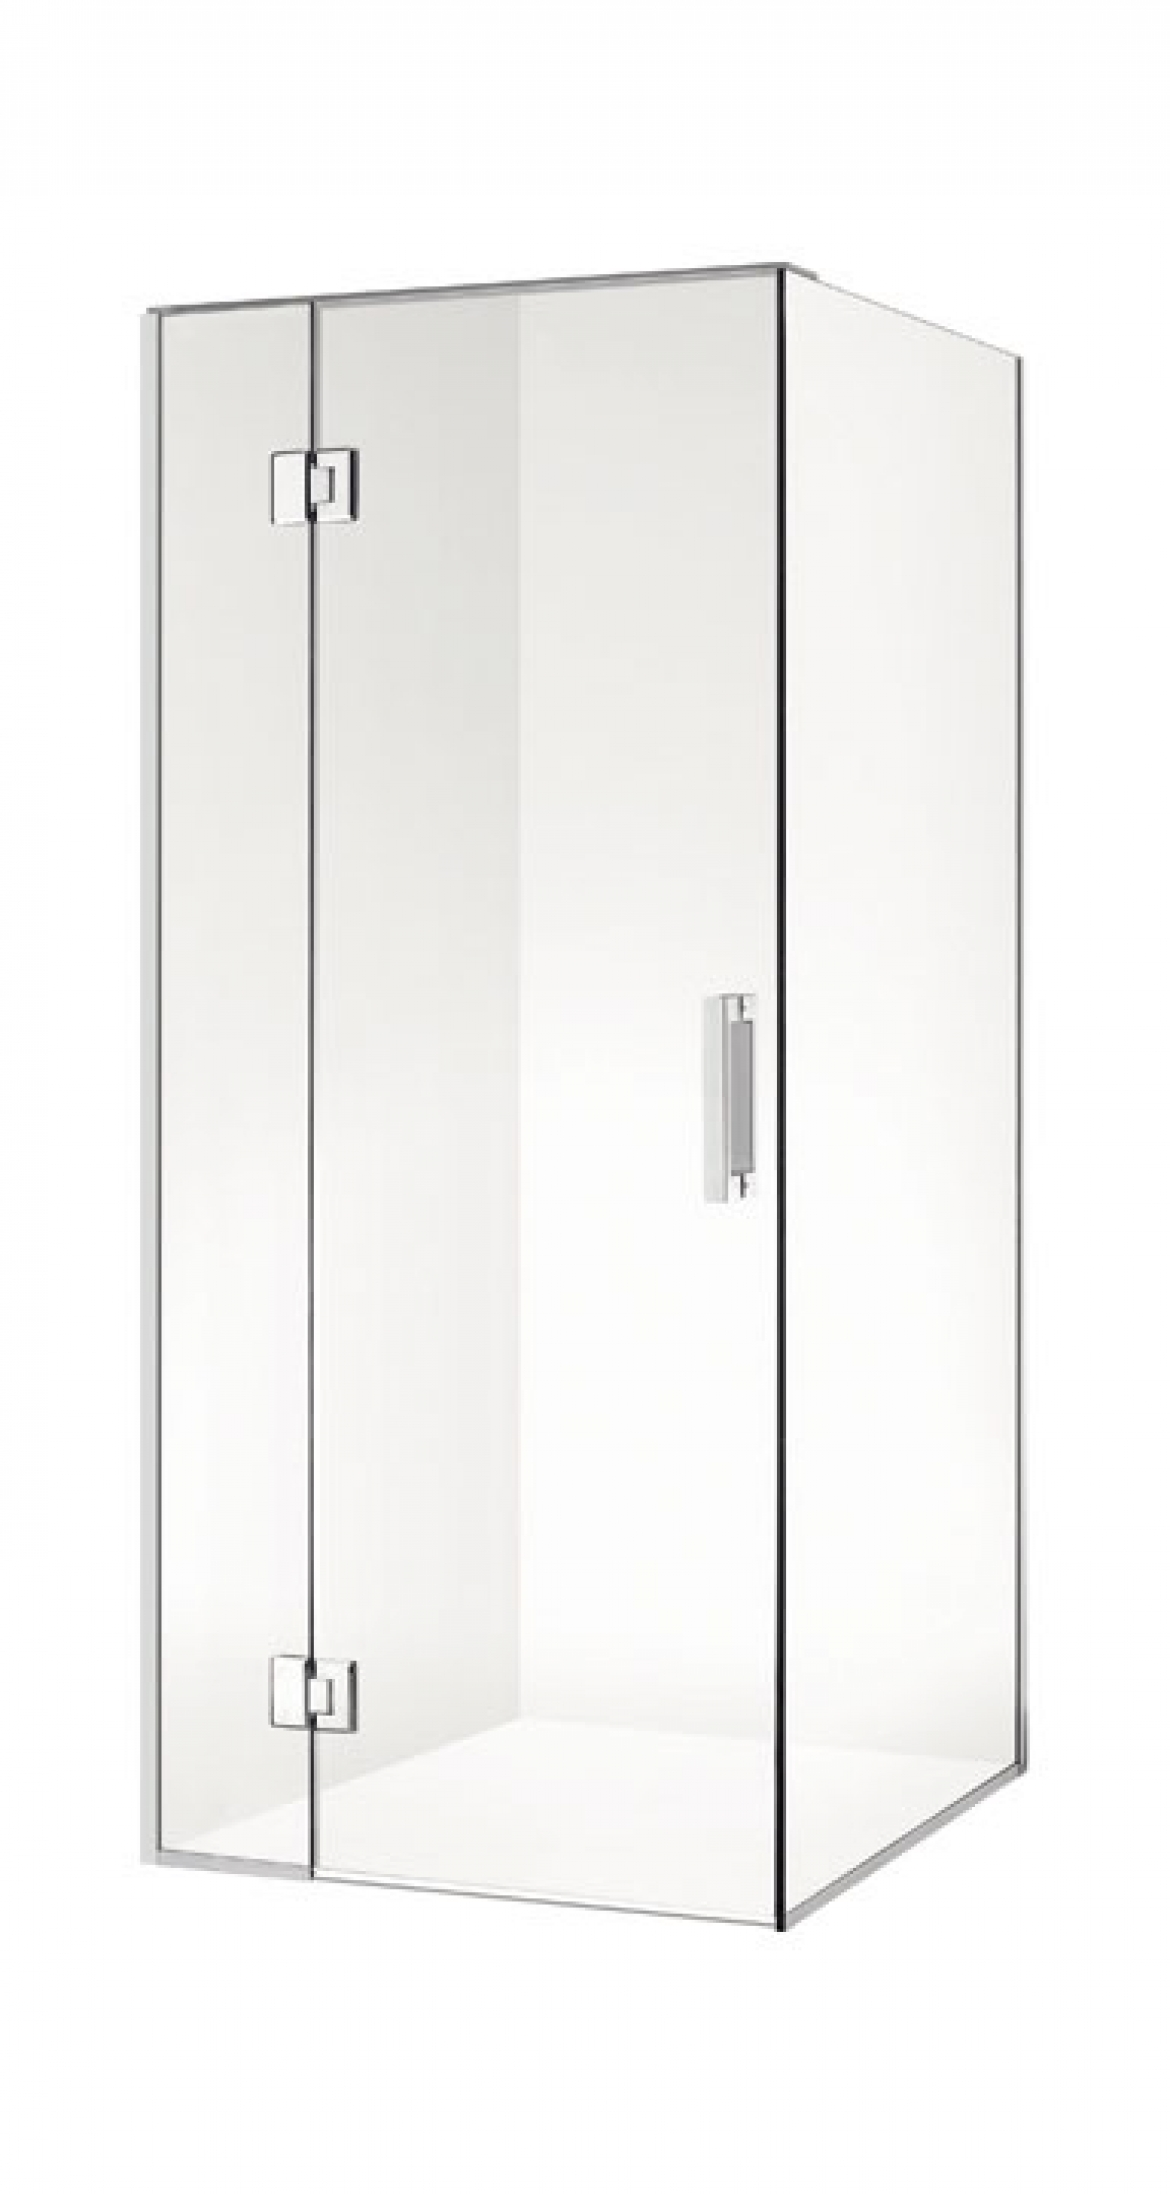 Frameless Shower Screen [Swing door]